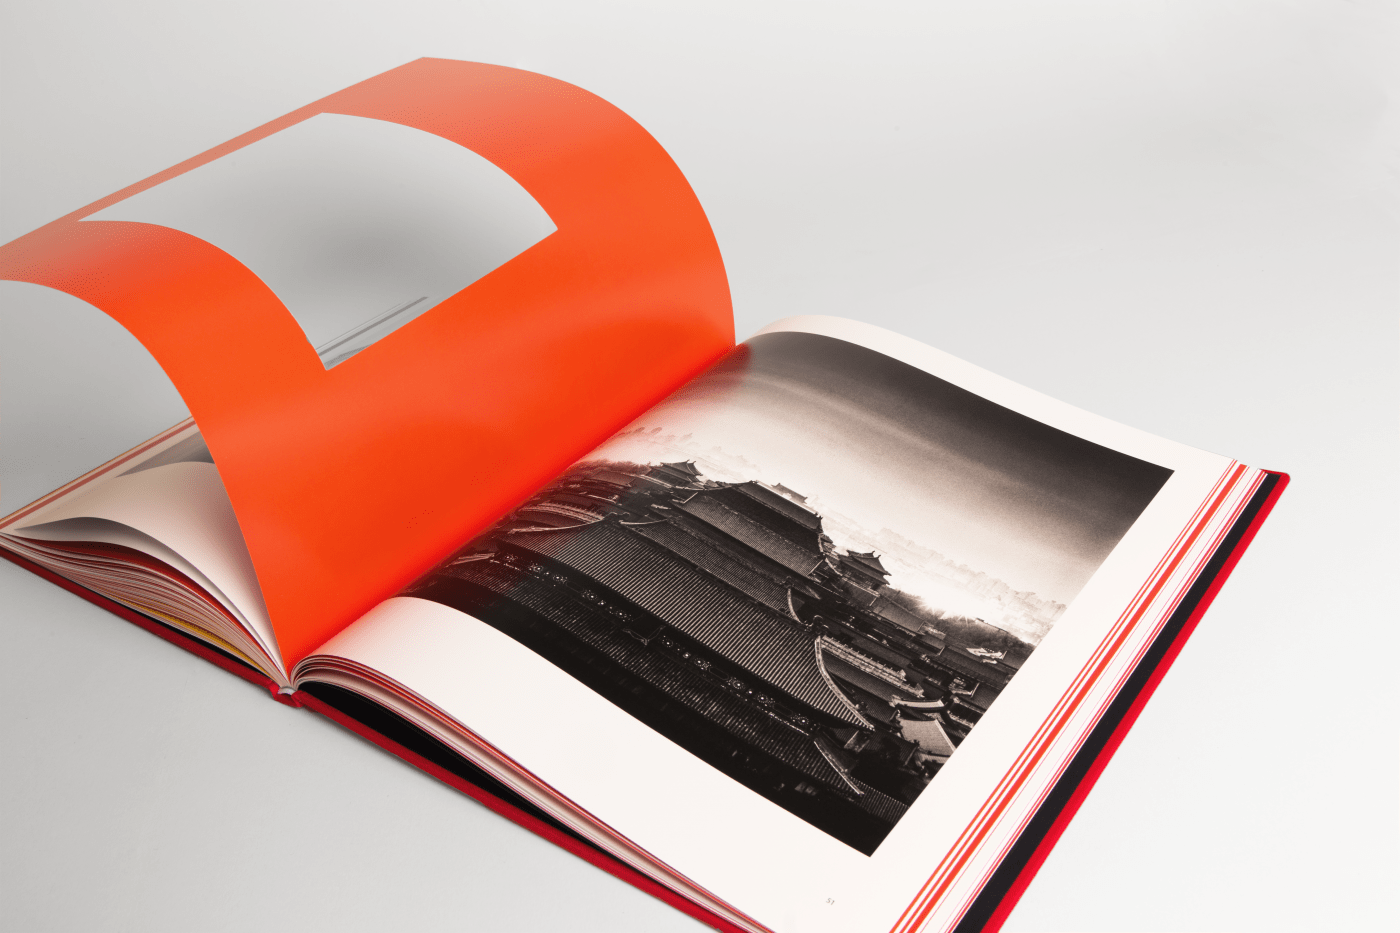 #MichaelKenna, #OneSundayInBeijing (mon hommage à #ChrisMarker) Limited Edition of 700 copies, 350 with a yellow cover, 350 with a red cover, each with a lenticular cover and a 18cm x 19cm colour c-print enclosed in the book (souvenir of Beijing from the artist), note that each colour will come with a different print.Size book 290mm X 310 mm #HappyPublisher IS LEFT 64 red copies…